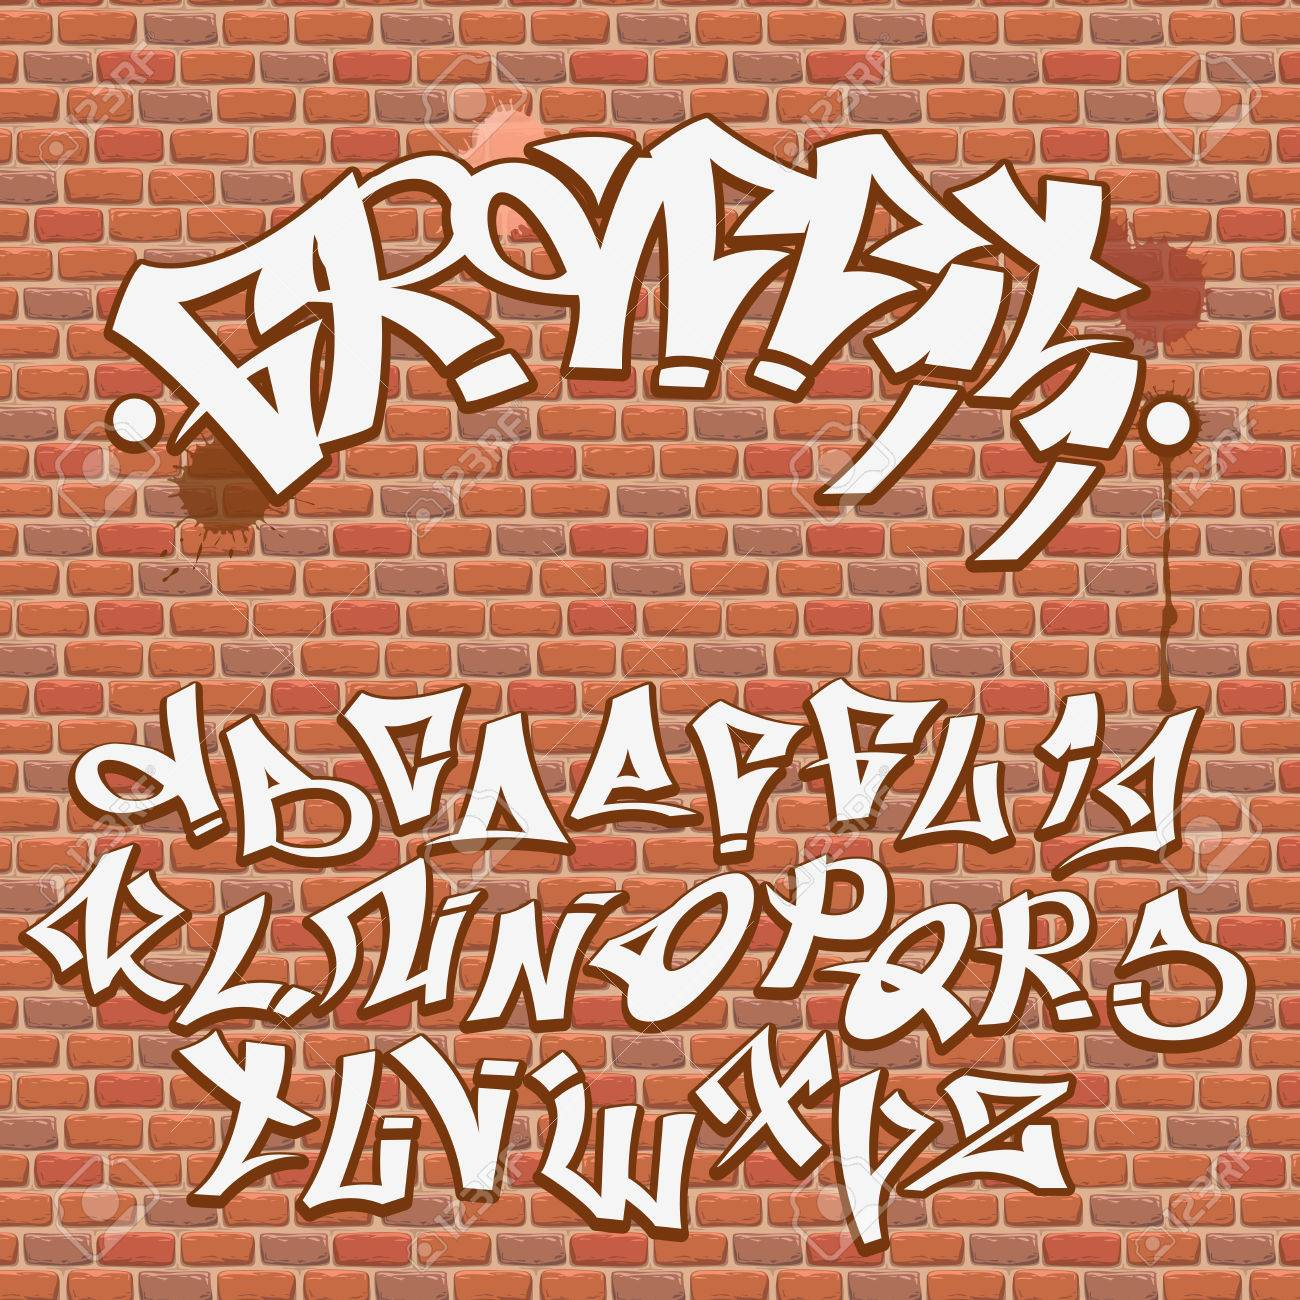 Graffiti Font Alphabet On The Brick Wall Stock Vector